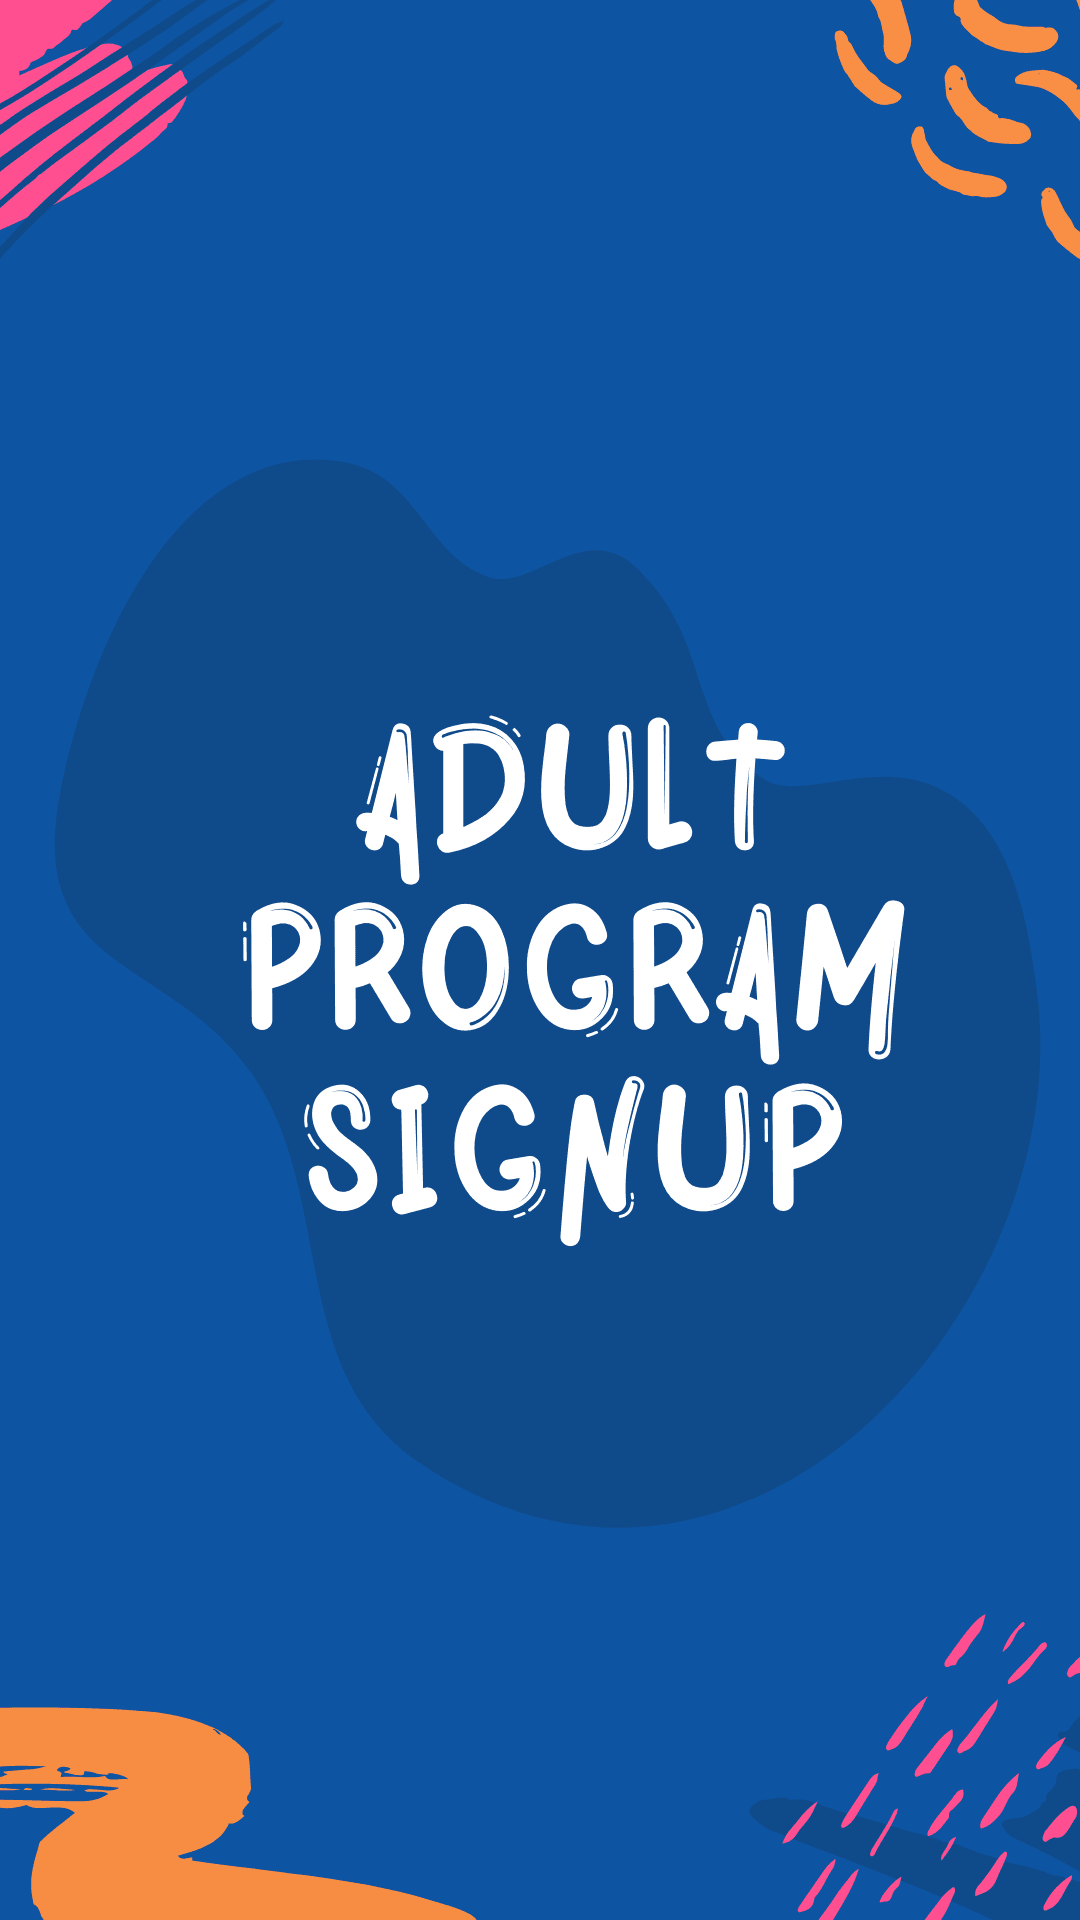 Adult Program Sign Up